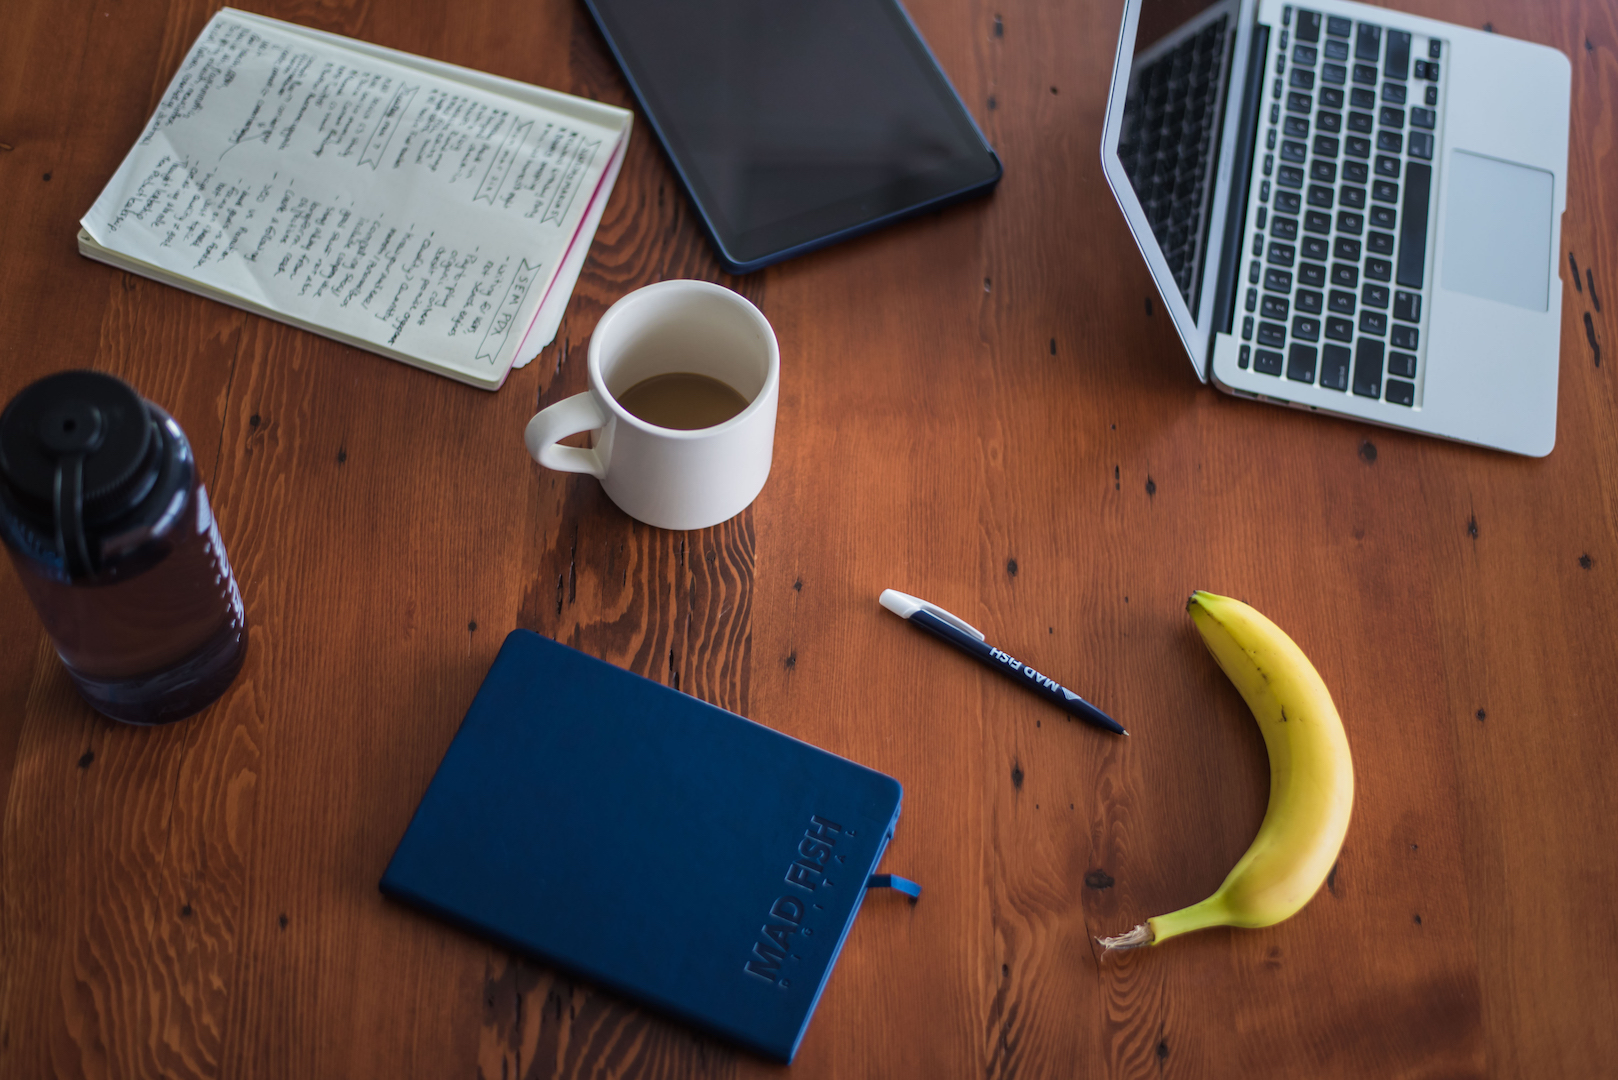 Assorted office items on a table